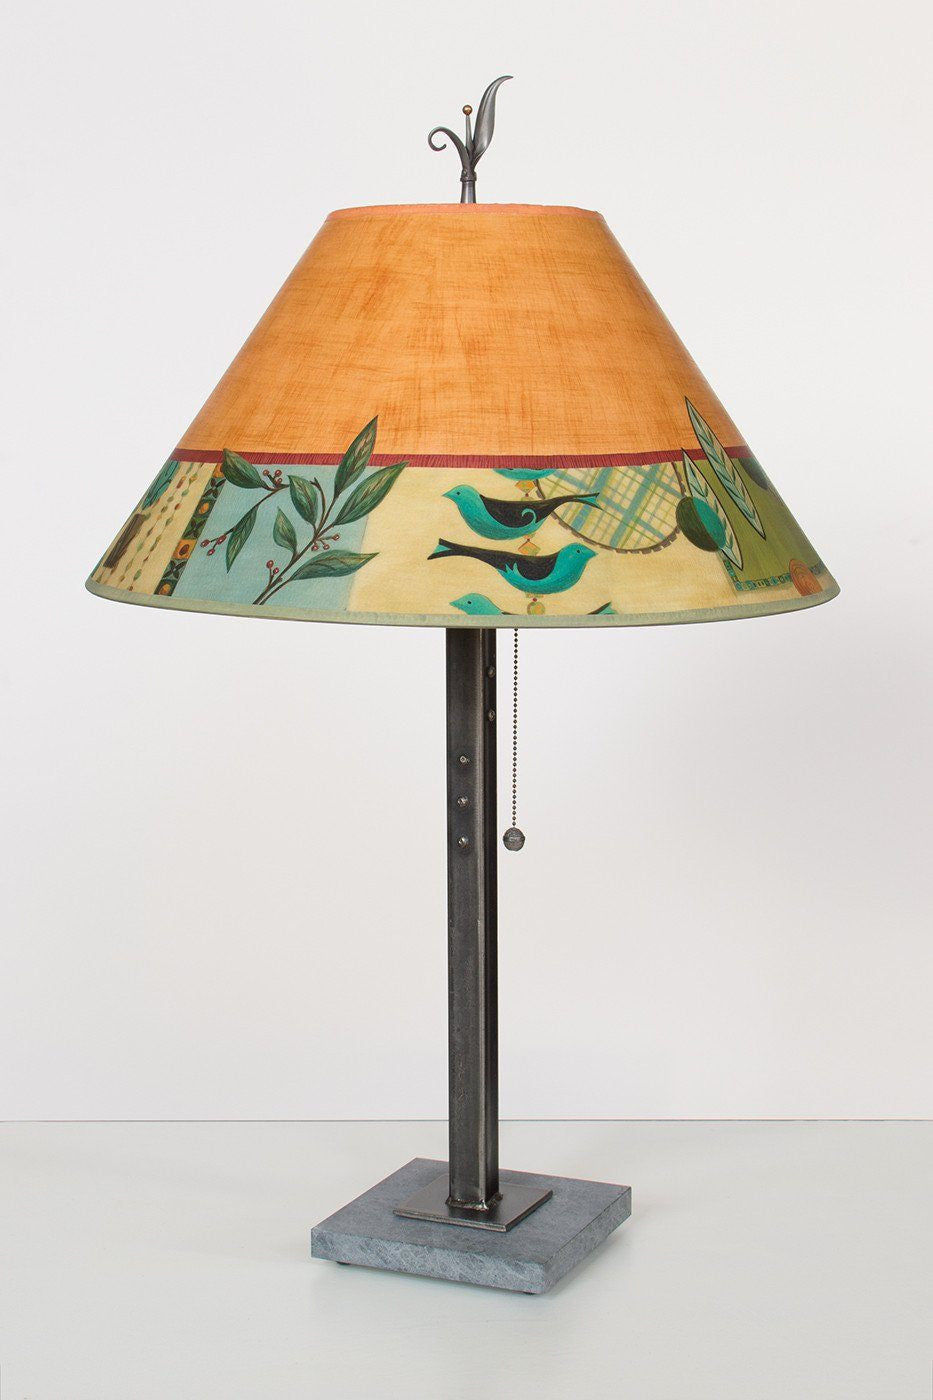 Steel Table Lamp on Italian Marble with Large Conical Shade in Spring Medley Spice